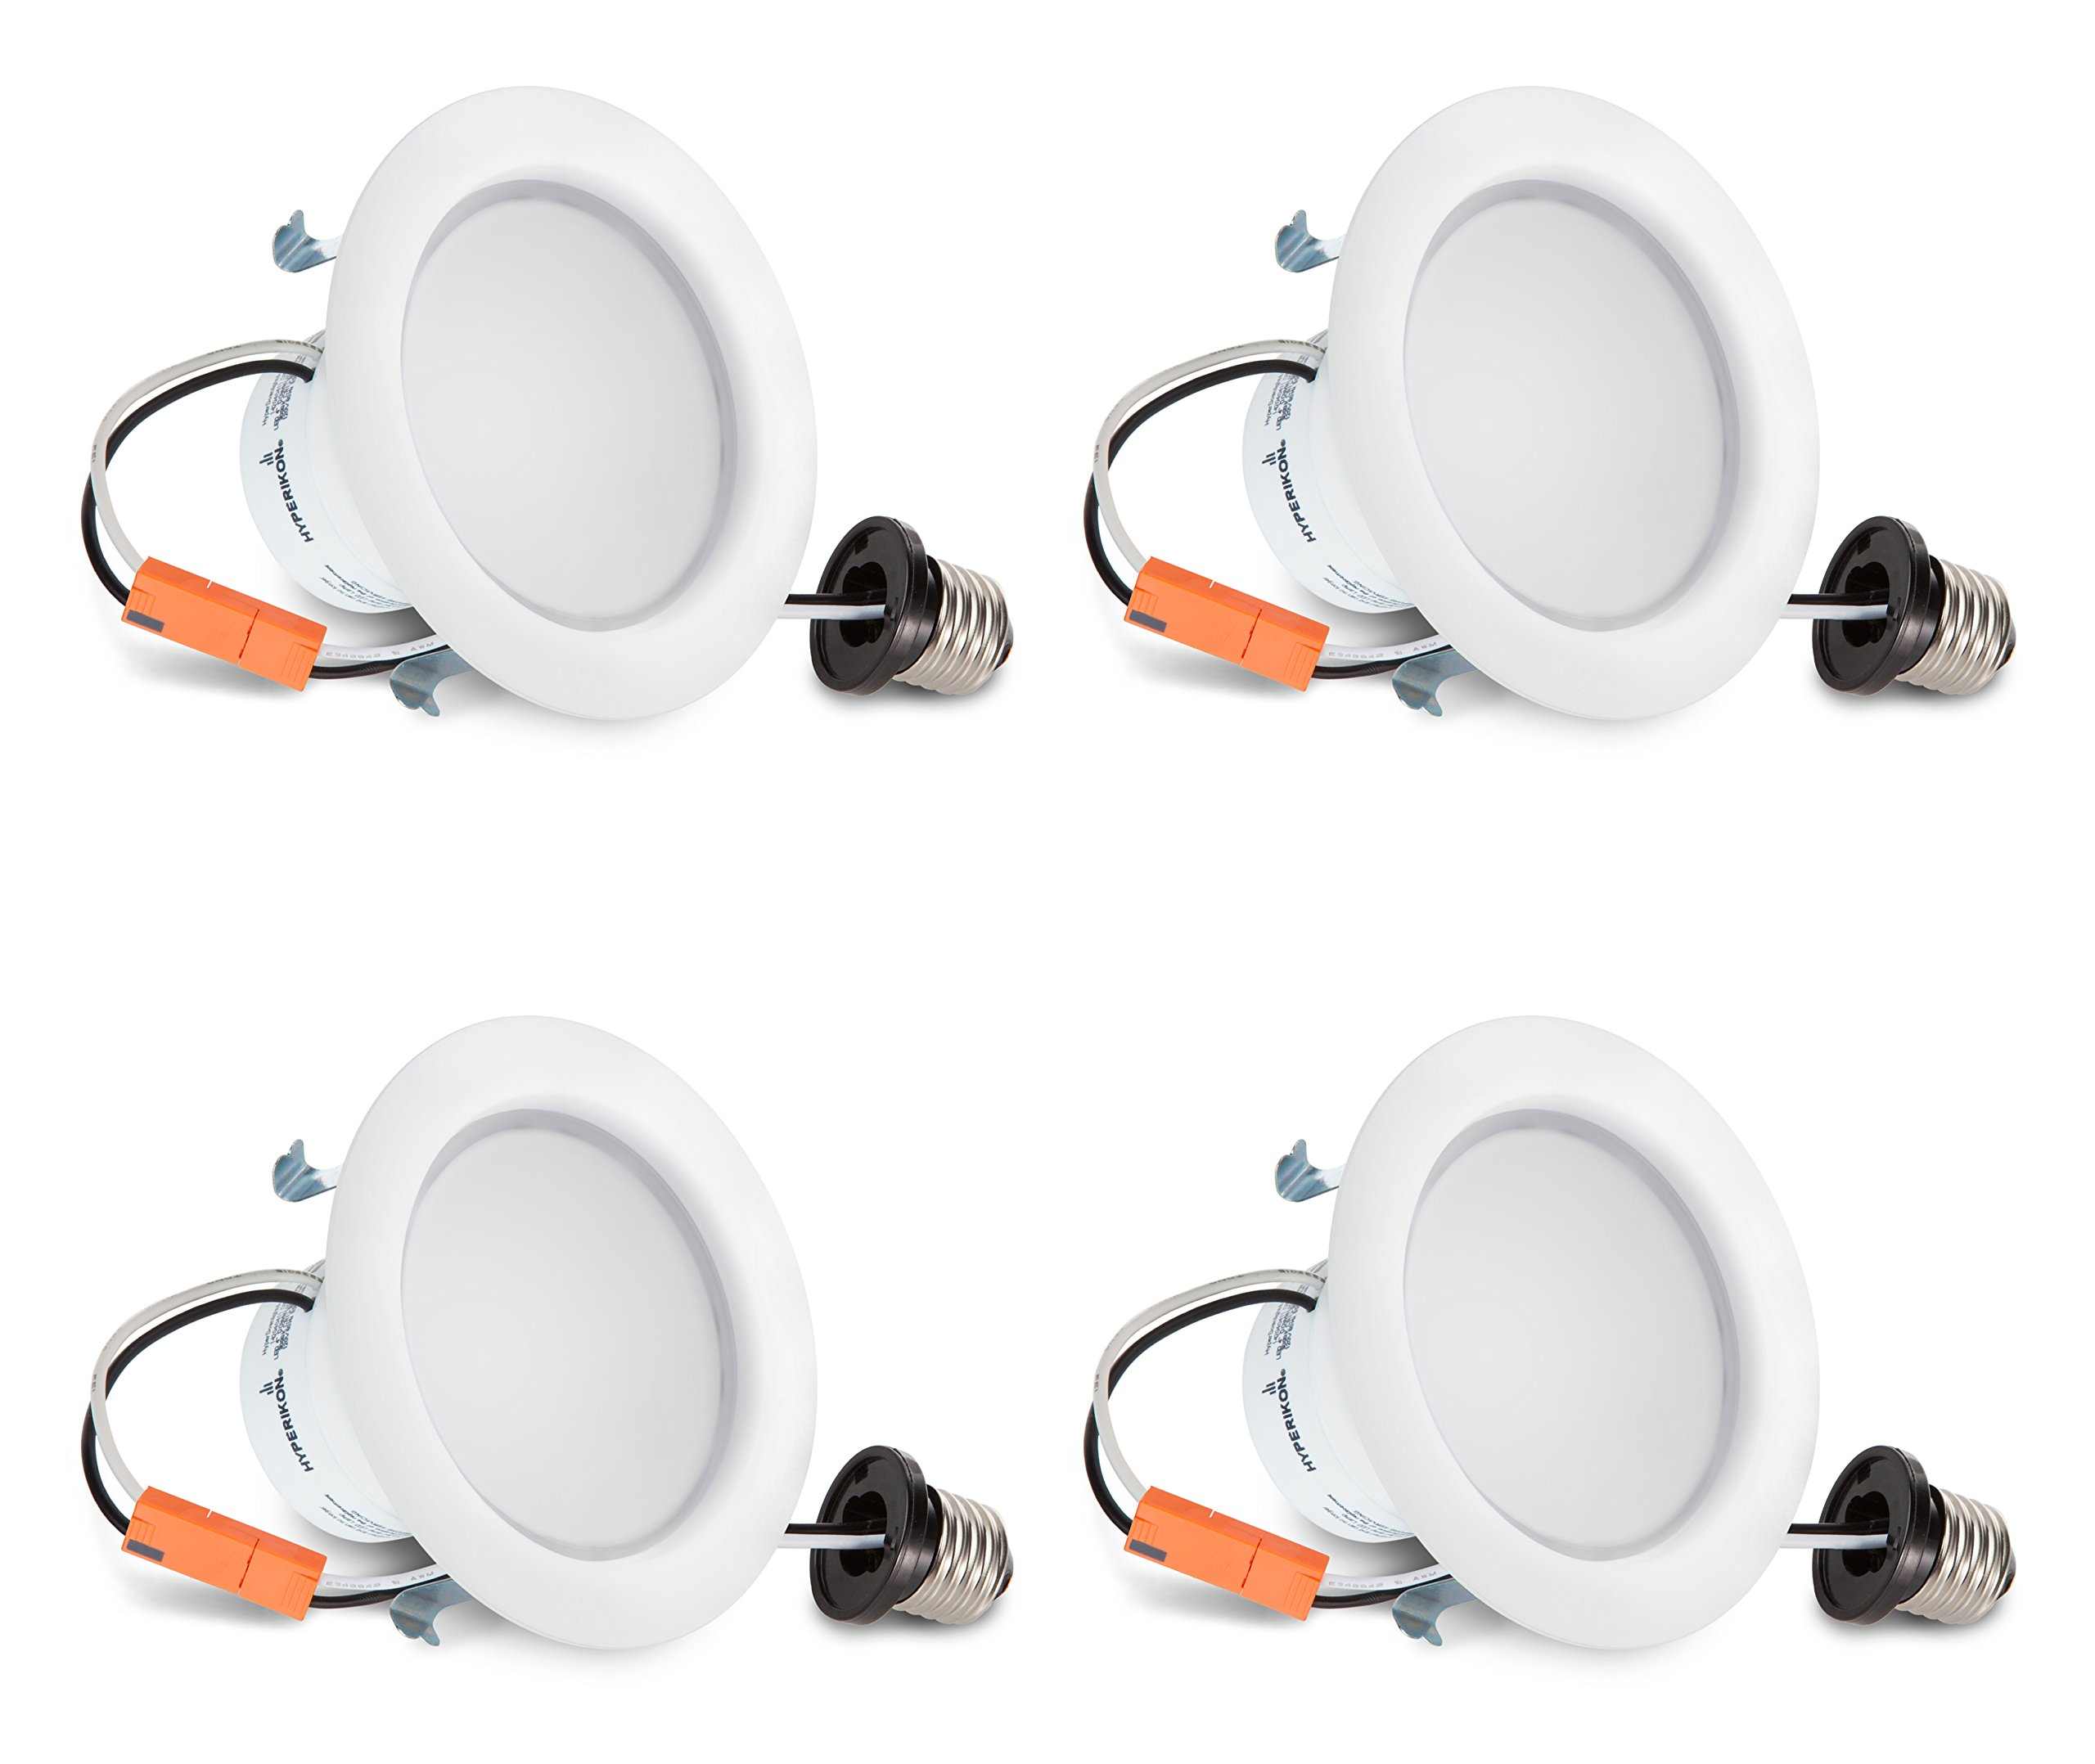 Hyperikon 4 Inch LED Recessed Lighting Dimmable Downlight, 9W (65W Equivalent), 3000K (Soft White), Retrofit Lighting Fixture,Great for Cans Bathroom, Kitchen, Office (4 Pack)